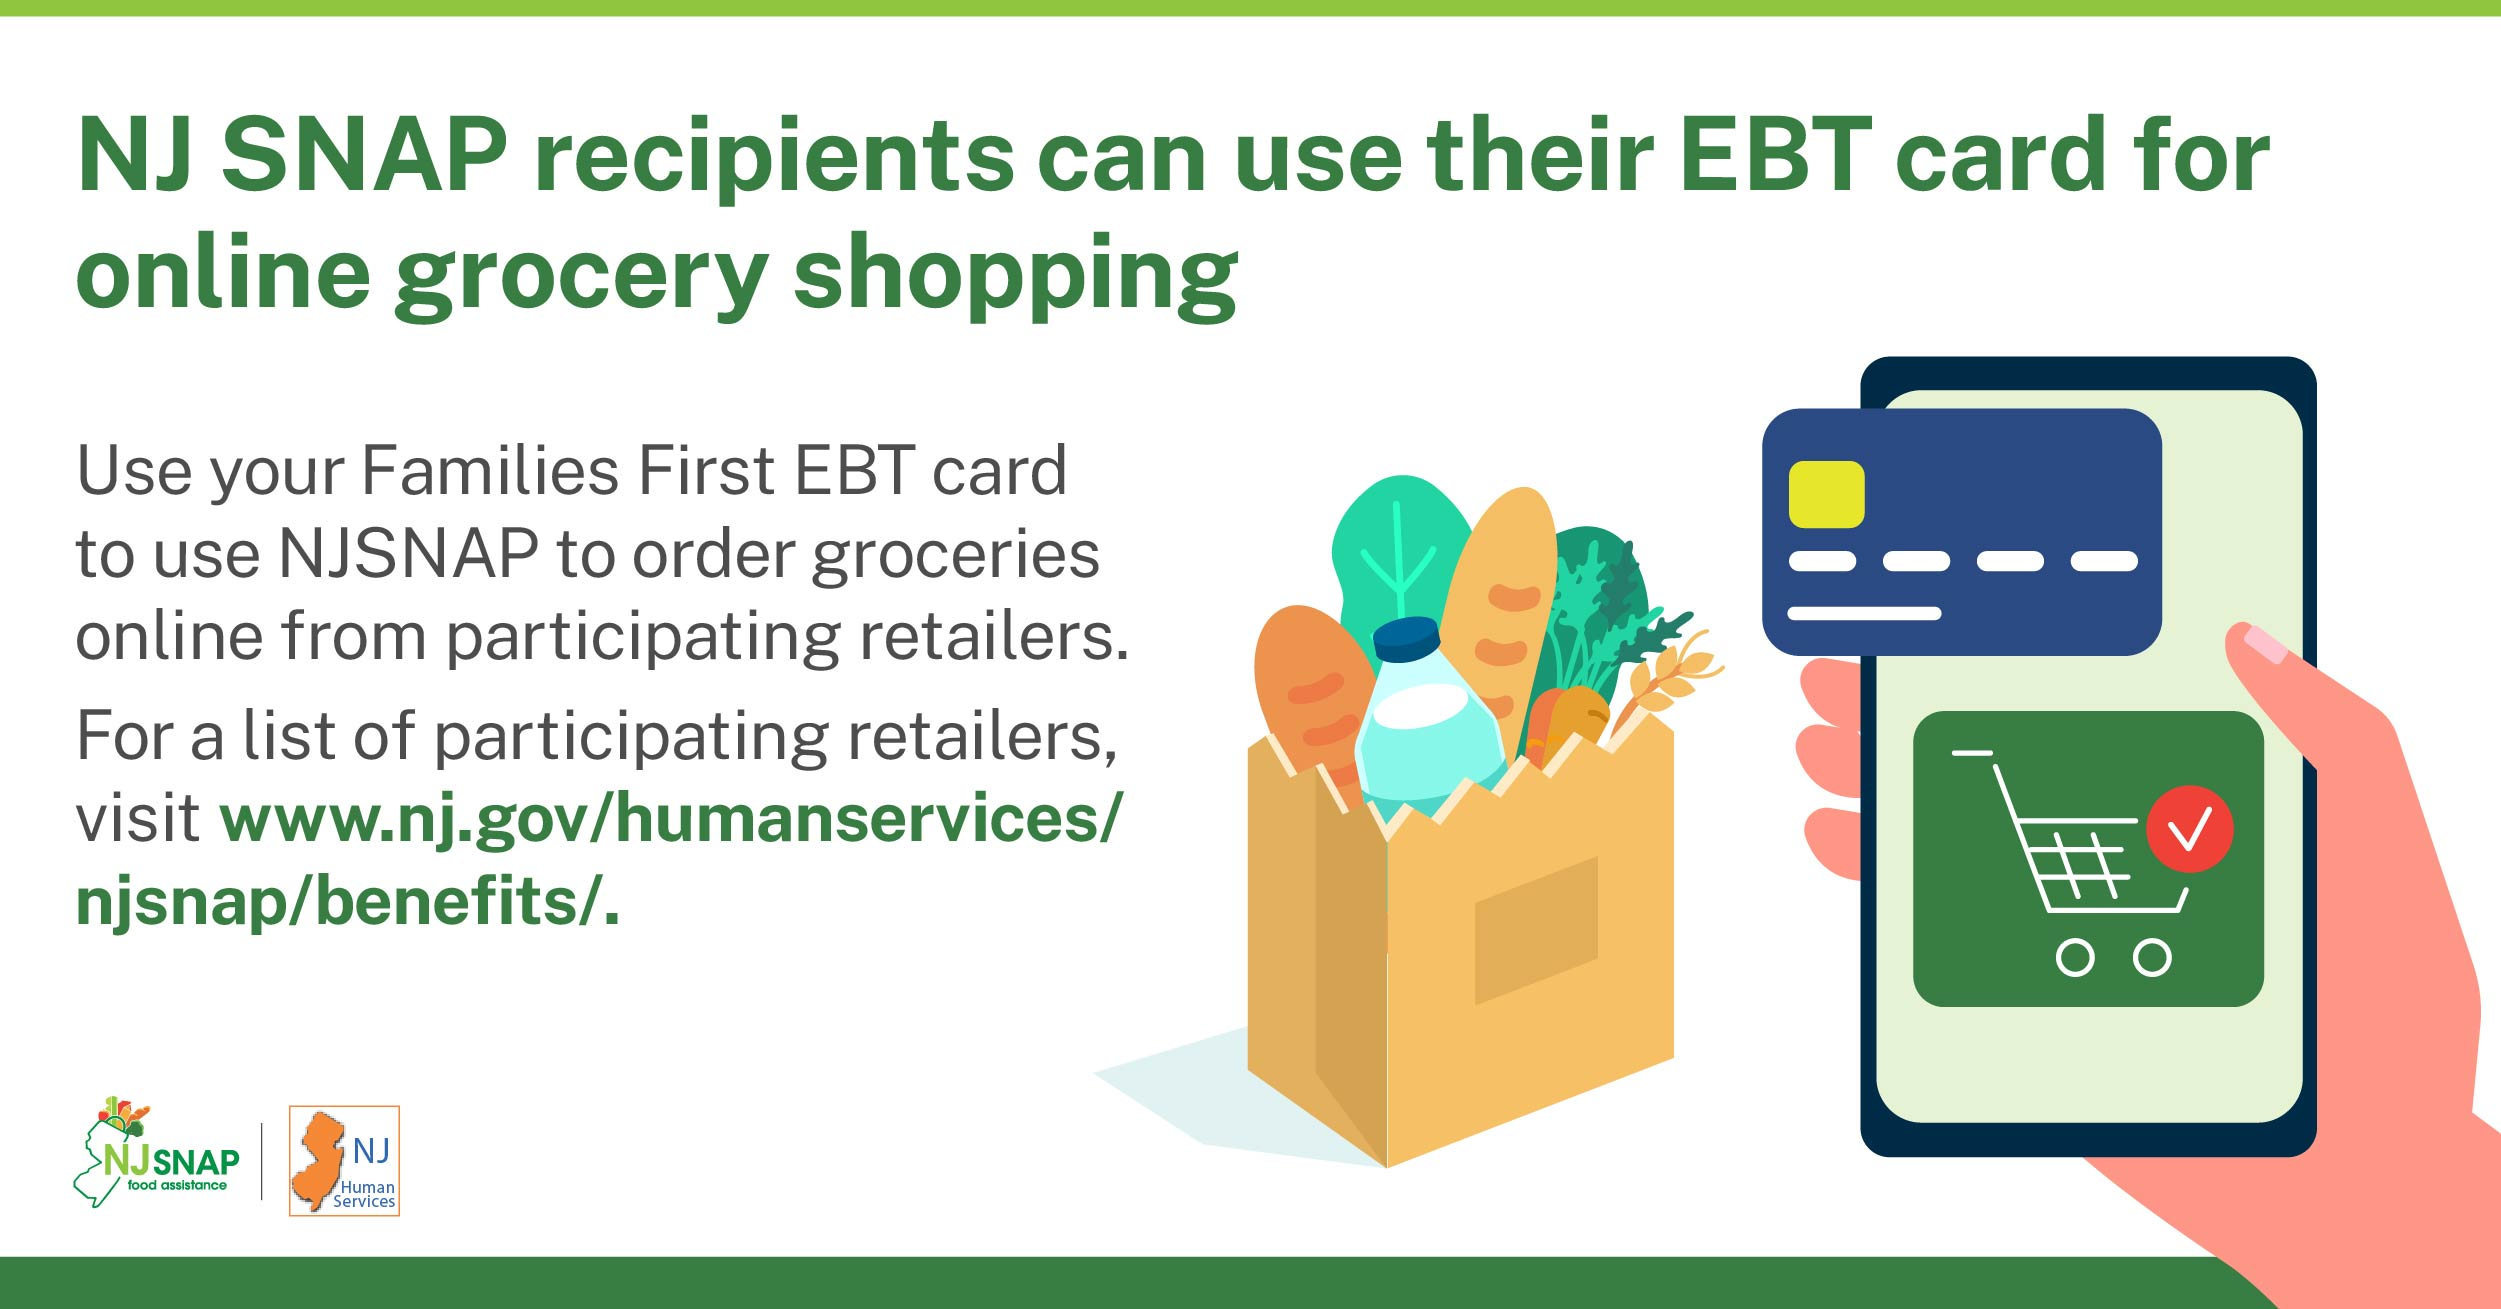 NJ SNAP recipients can use their EBT card for online grocery shopping. Visit https://www.nj.gov/humanservices/njsnap/benefits/